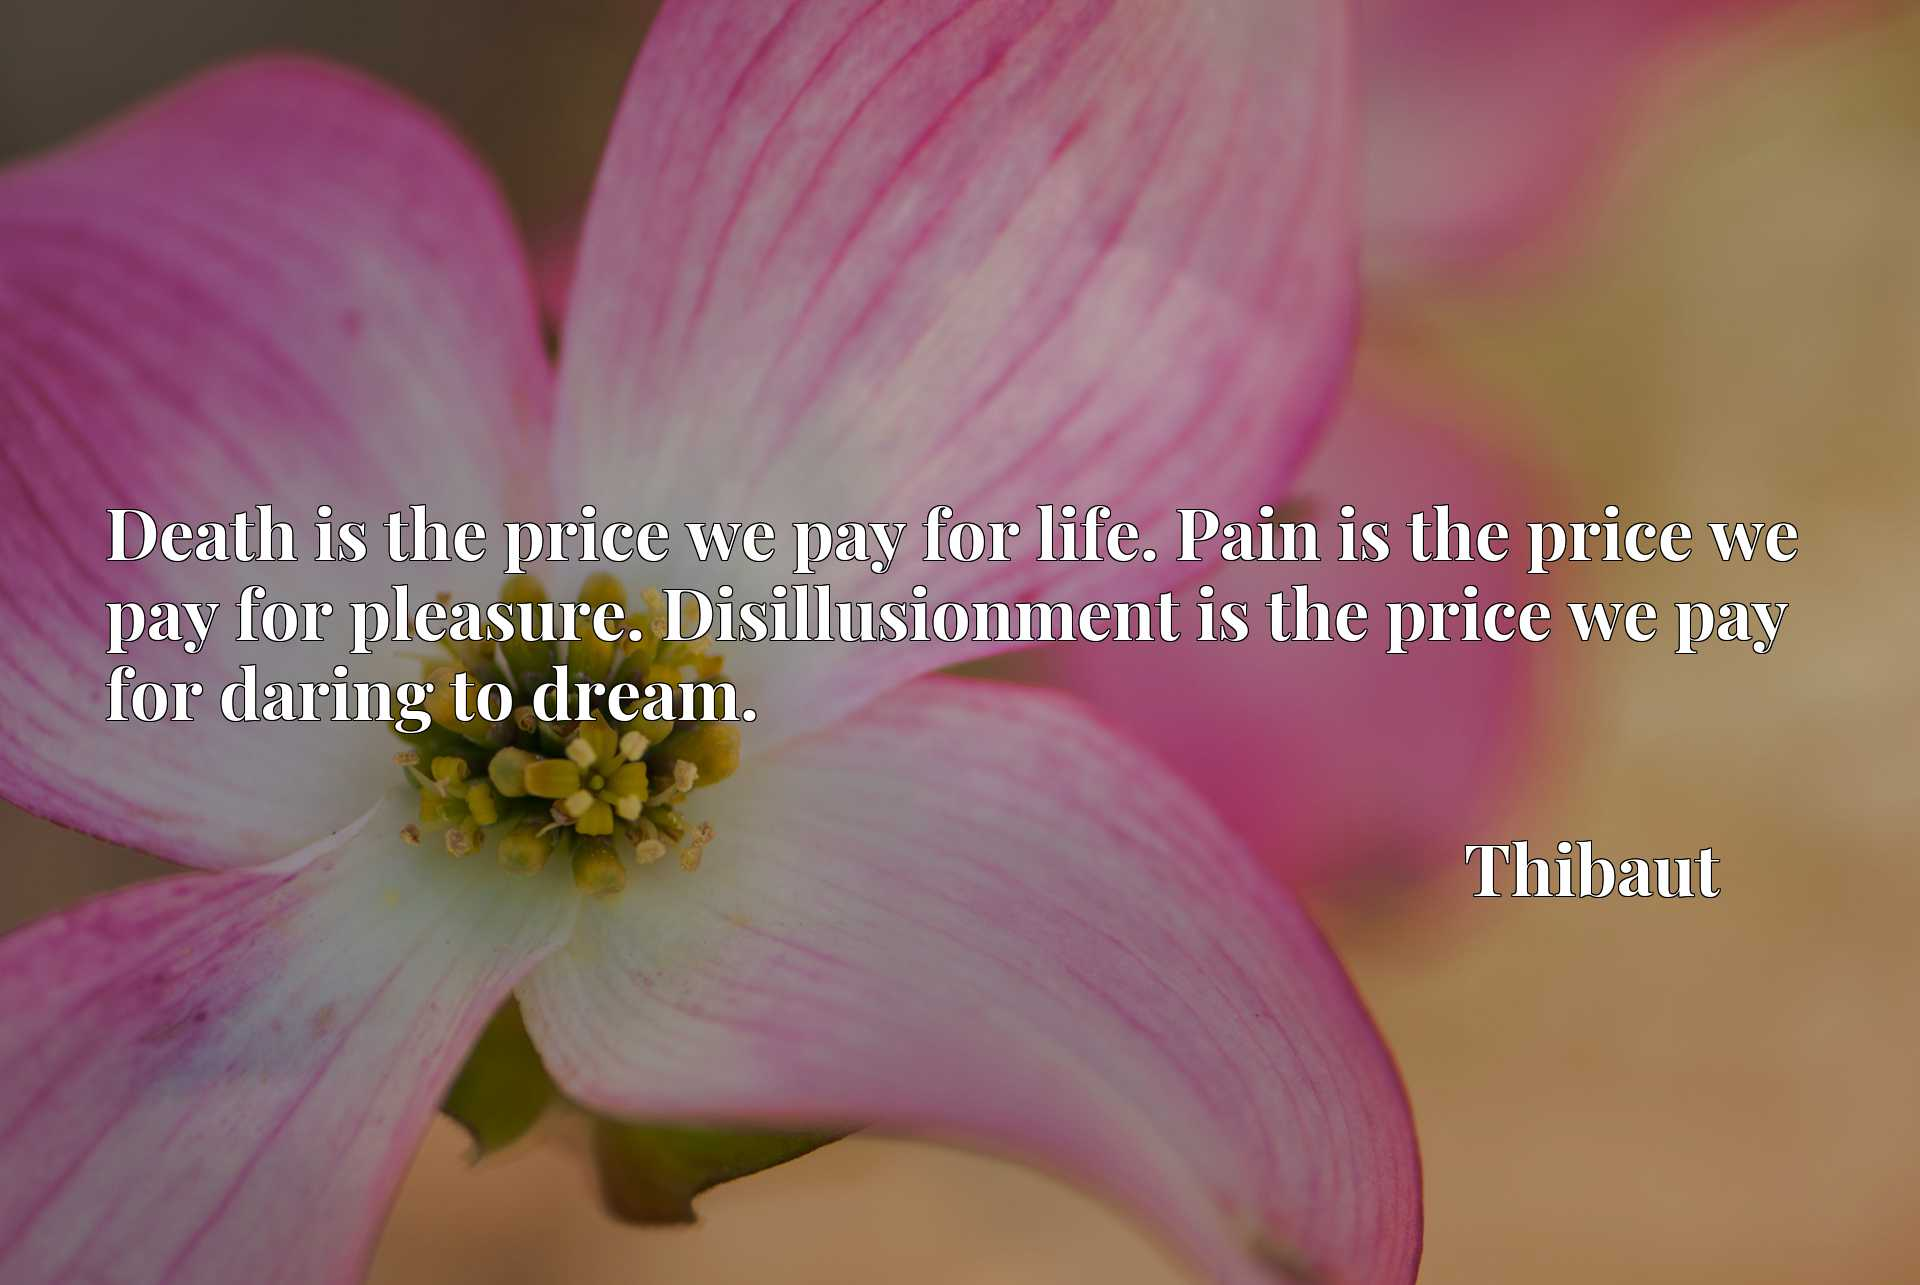 Death is the price we pay for life. Pain is the price we pay for pleasure. Disillusionment is the price we pay for daring to dream.